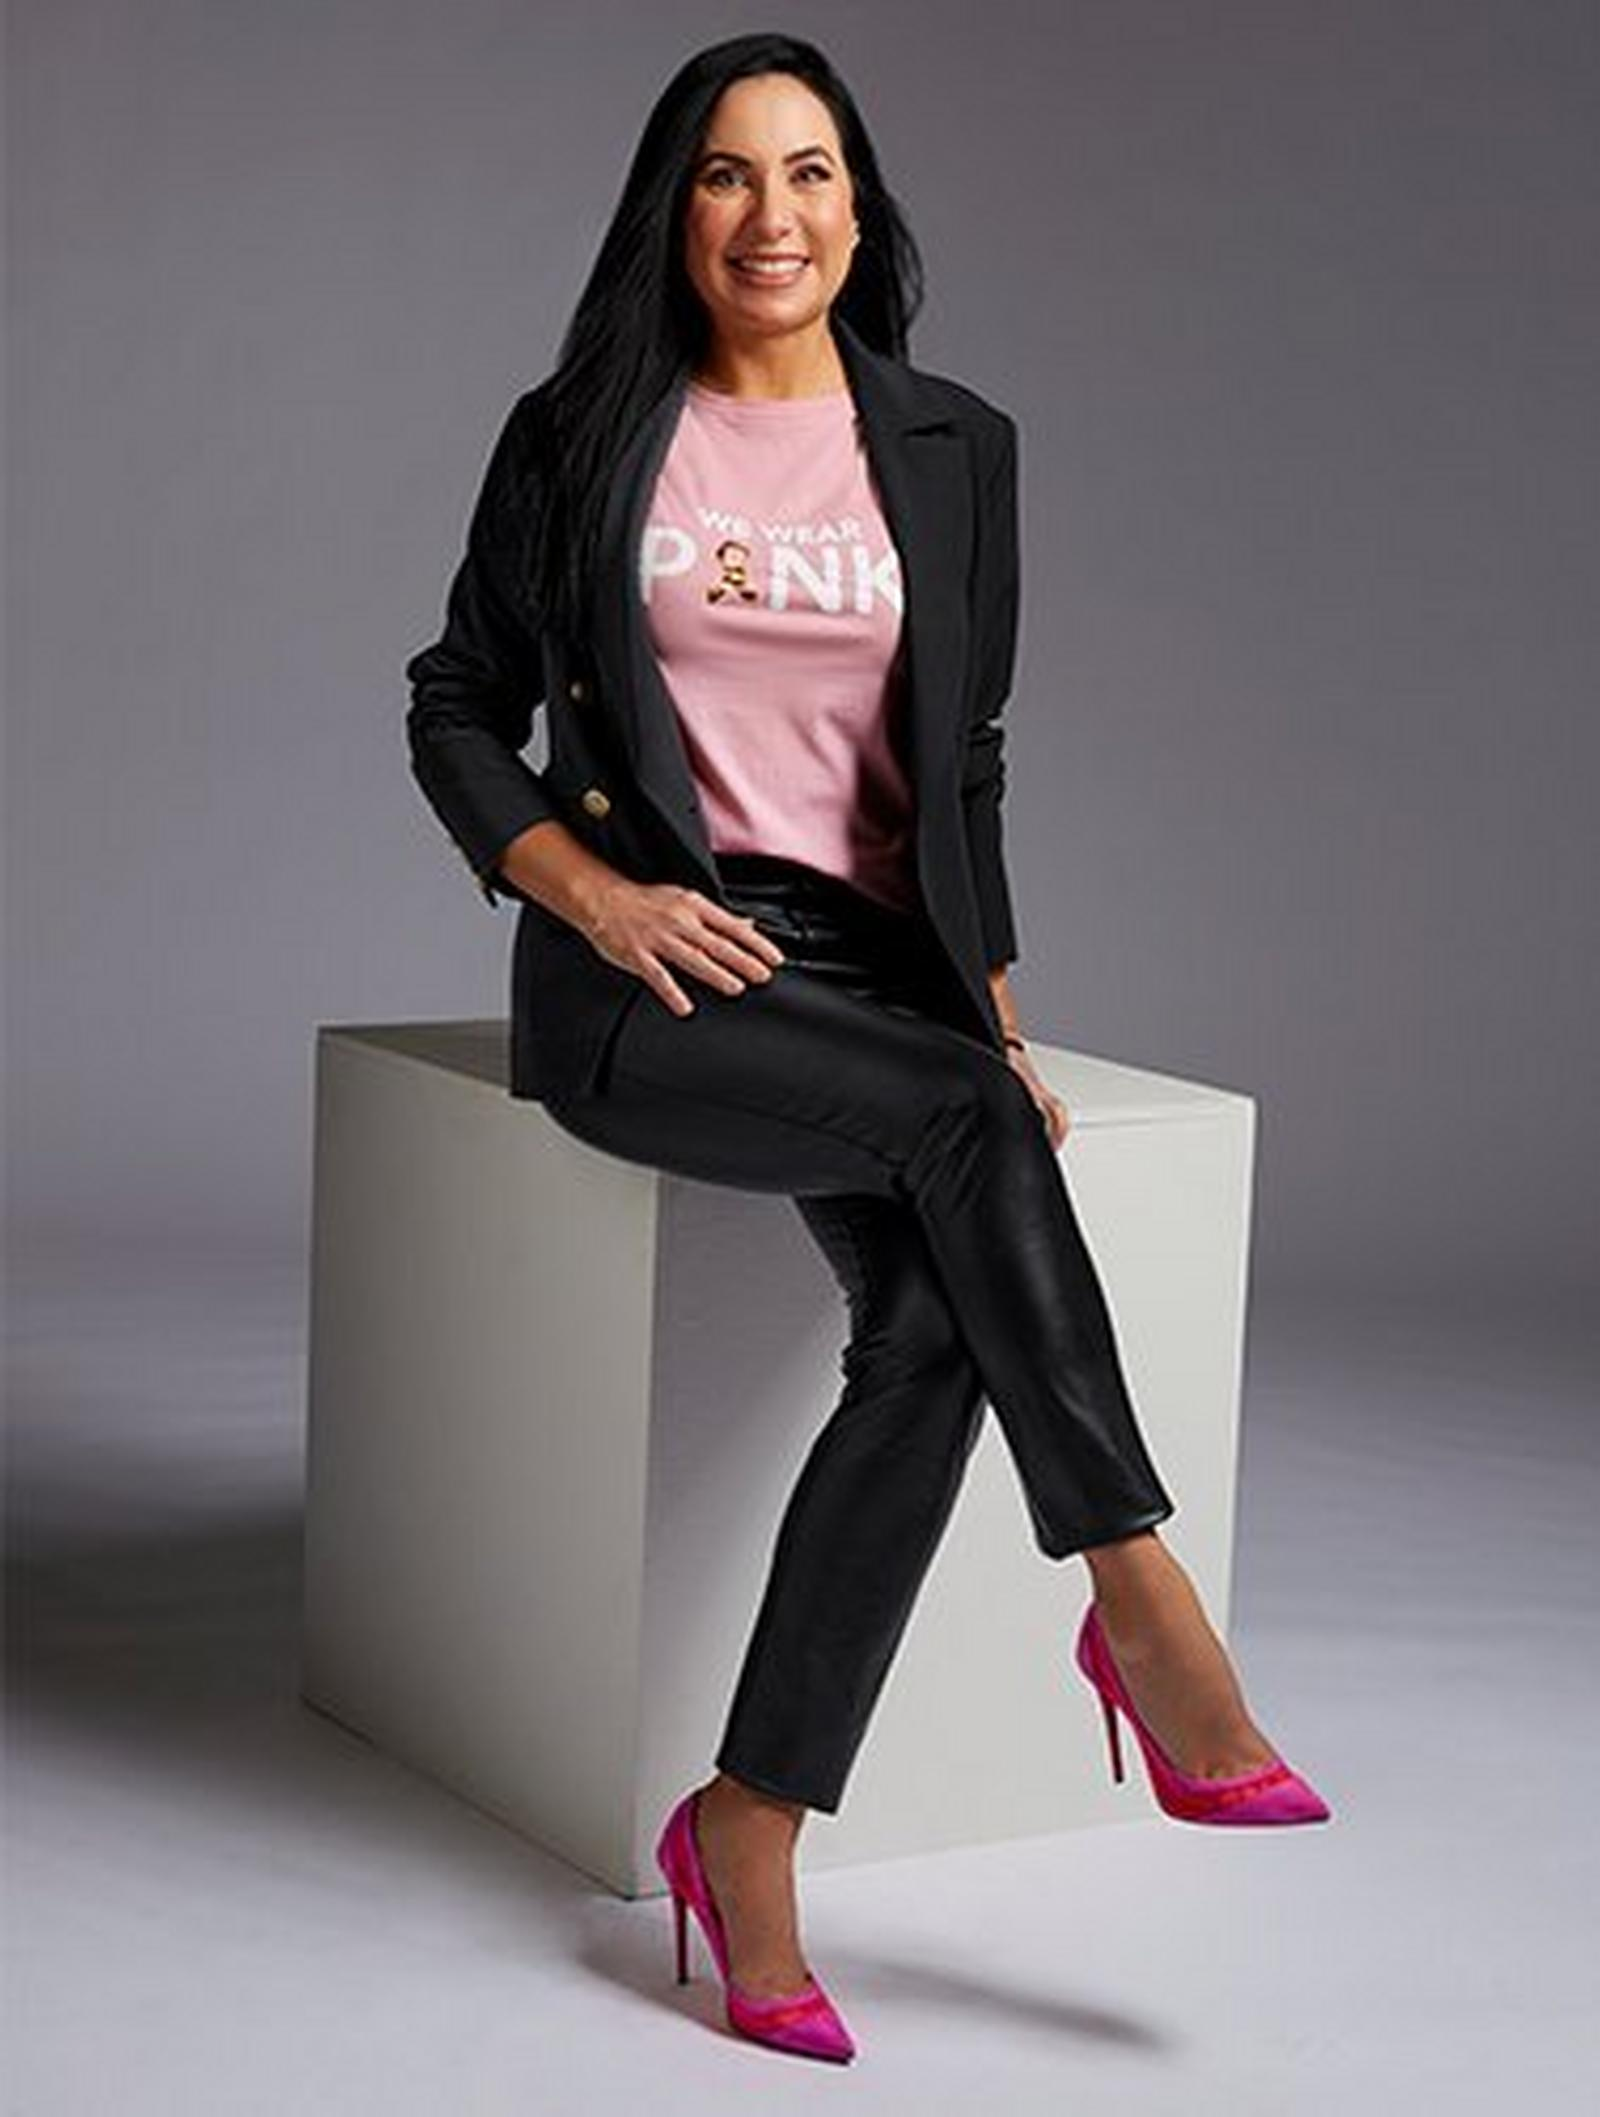 model wearing a black cardigan, black faux-leather pants, pink pumps, and a pink breast cancer awareness themed shirt that says